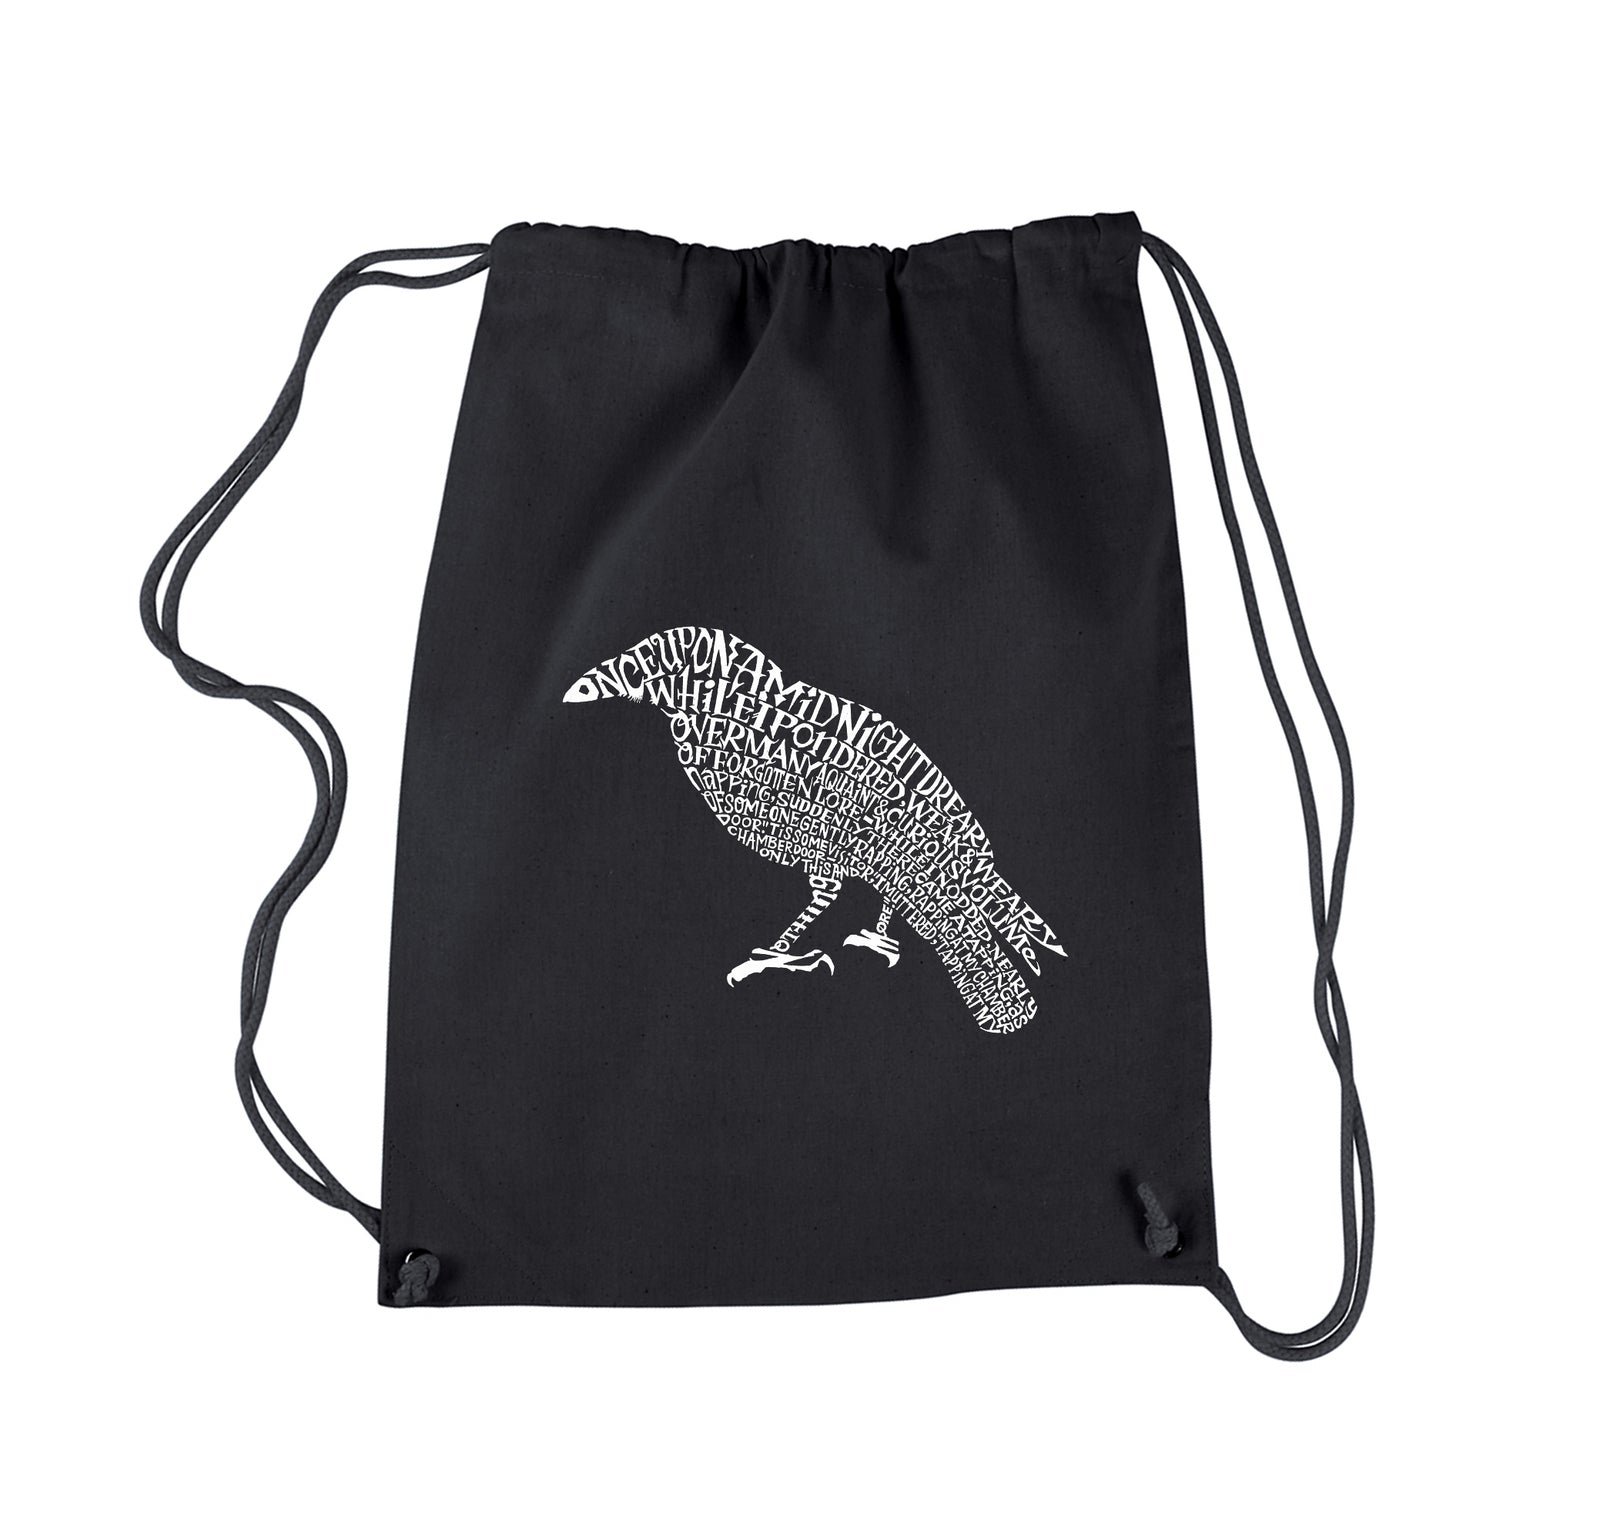 Drawstring Word Art Backpack - Edgar Allan Poe's The Raven